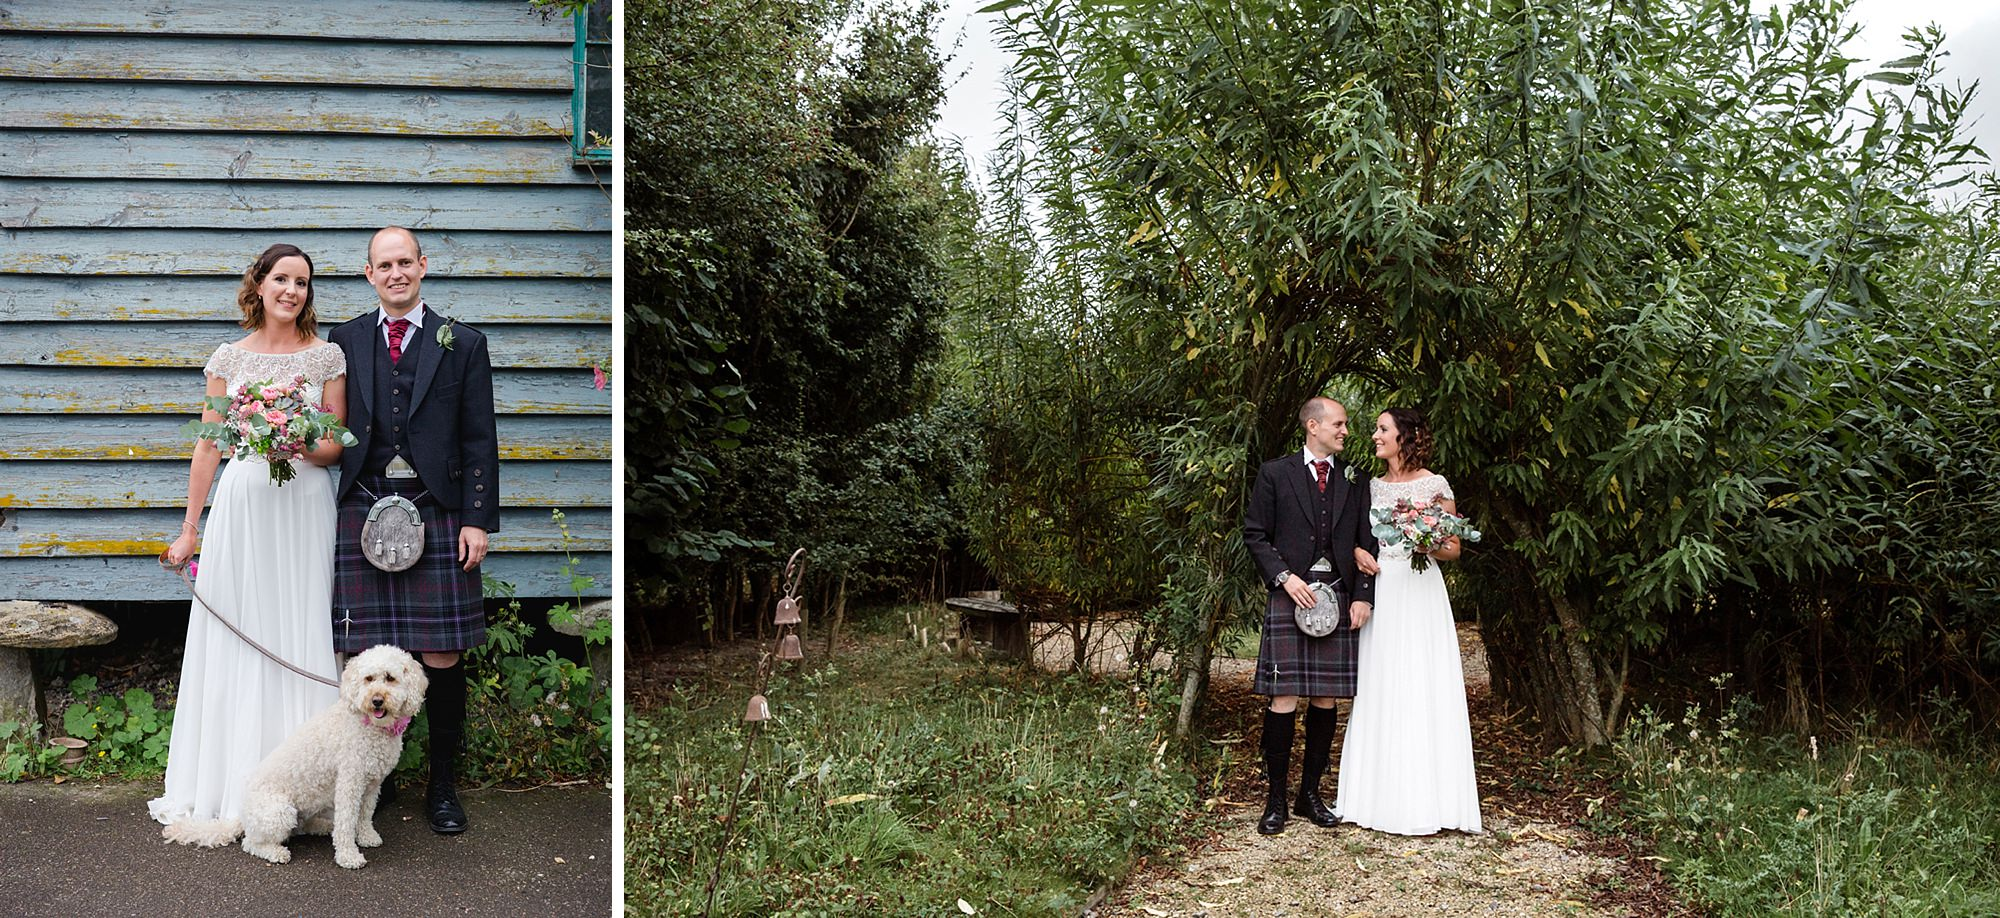 outdoor humanist wedding photography bride and groom with their dog